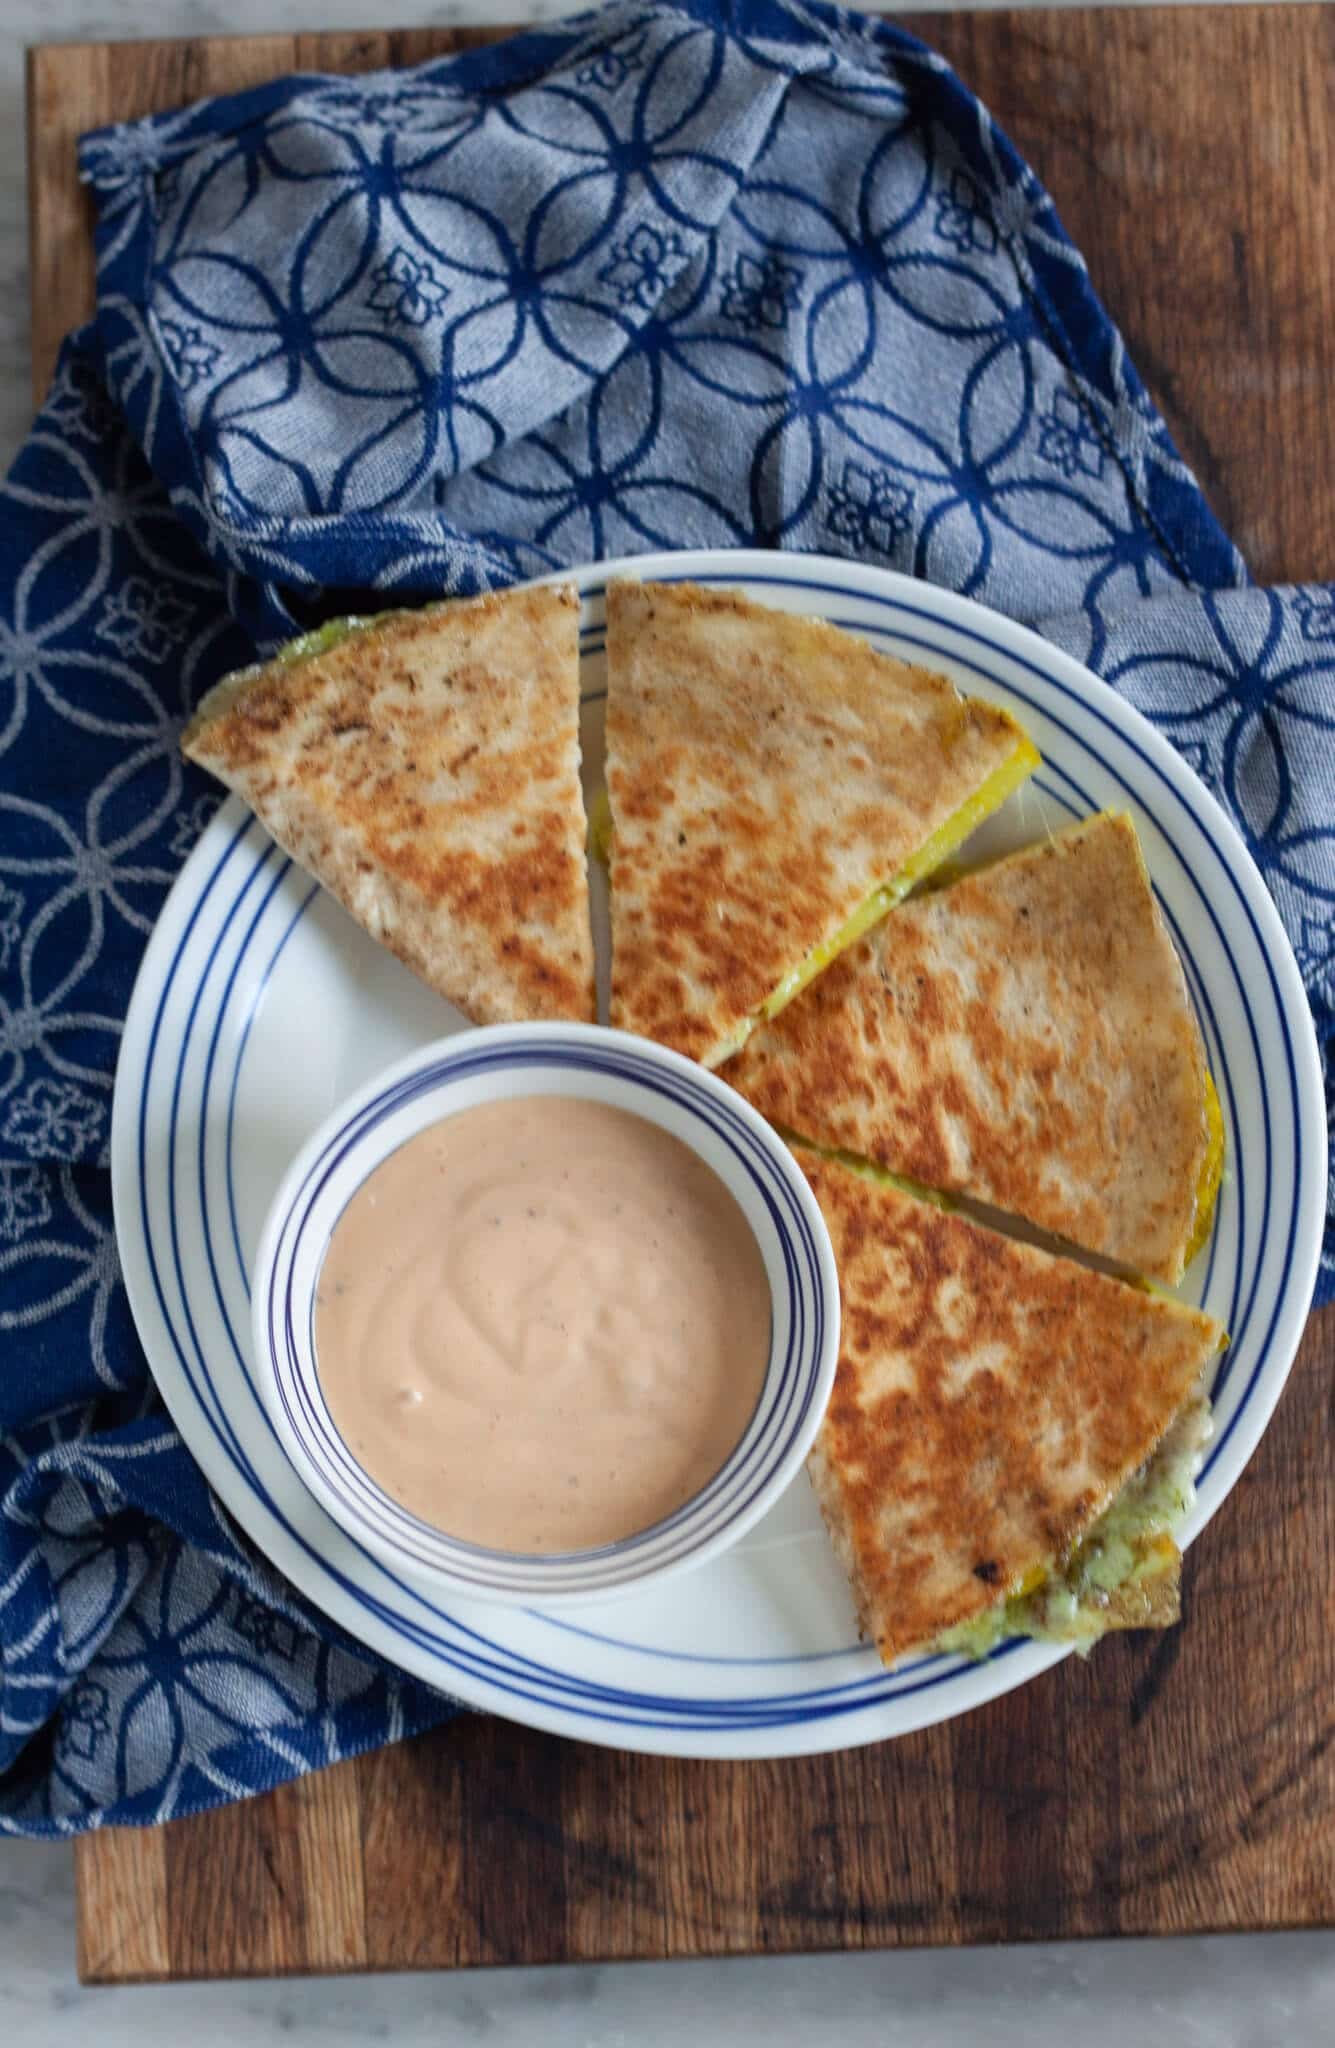 Dill Pickle Quesadilla